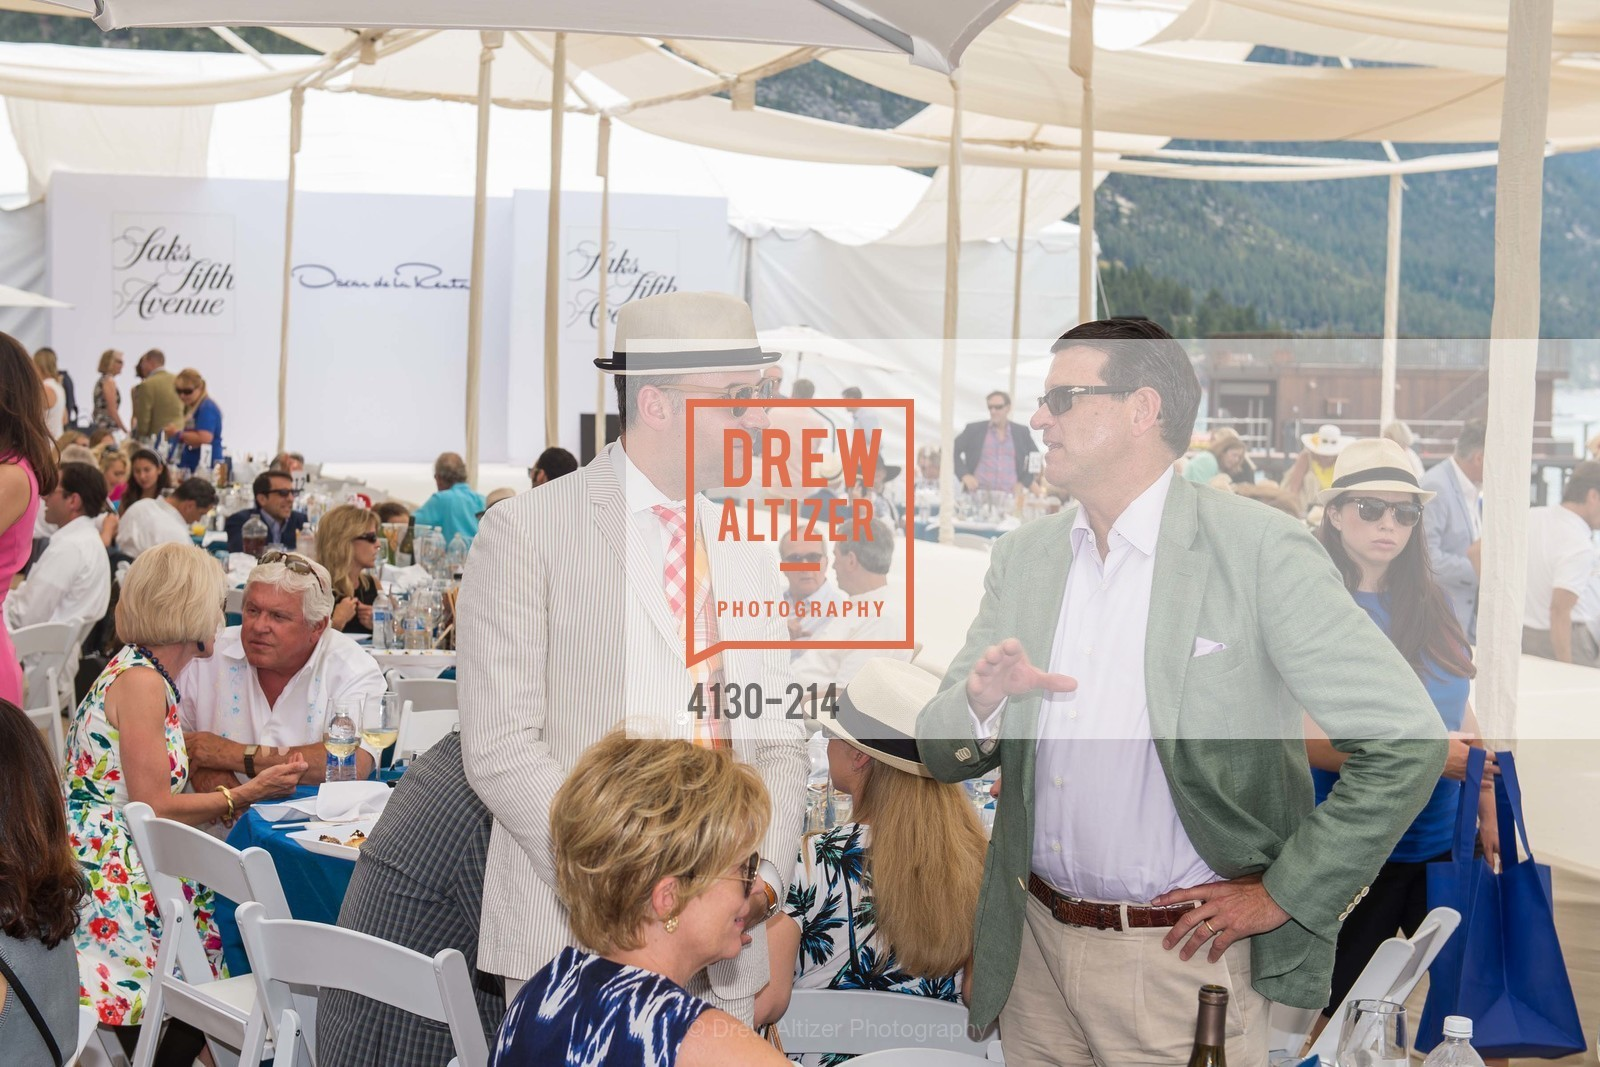 Robert Arnold-Kraft, Edward Poole, Saks Fifth Avenue and The League to Save Lake Tahoe Present Fashion on the Lake, Private Residence, August 1st, 2015,Drew Altizer, Drew Altizer Photography, full-service agency, private events, San Francisco photographer, photographer california